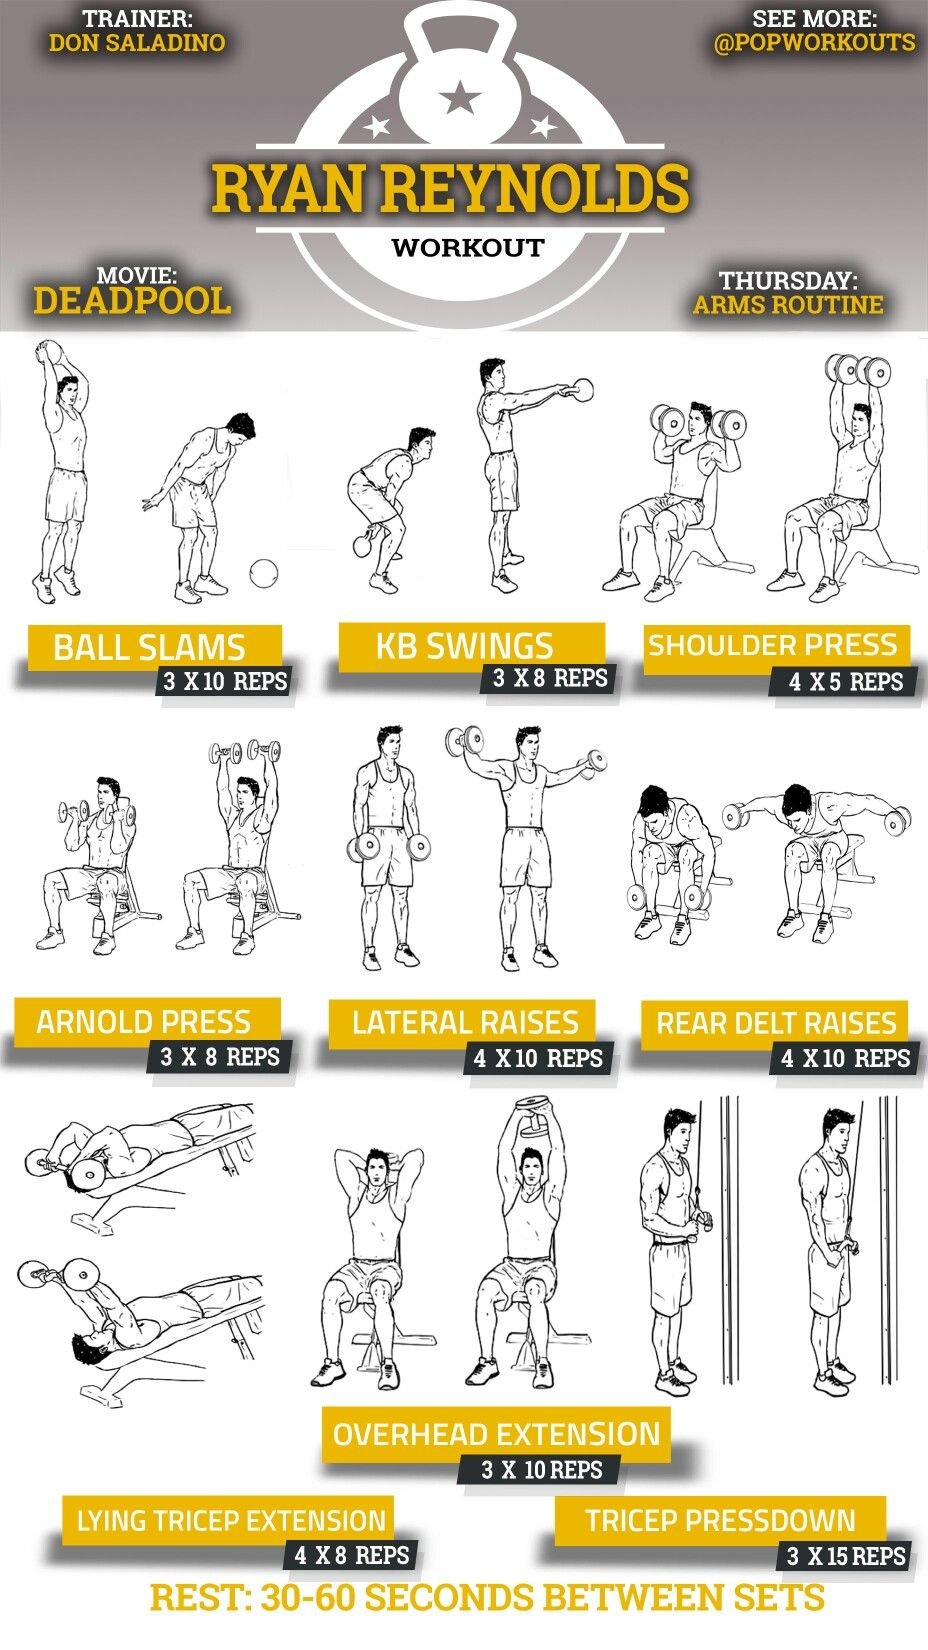 Upper Body Gym Workout Pop Workouts Workout Chart Workout Routine